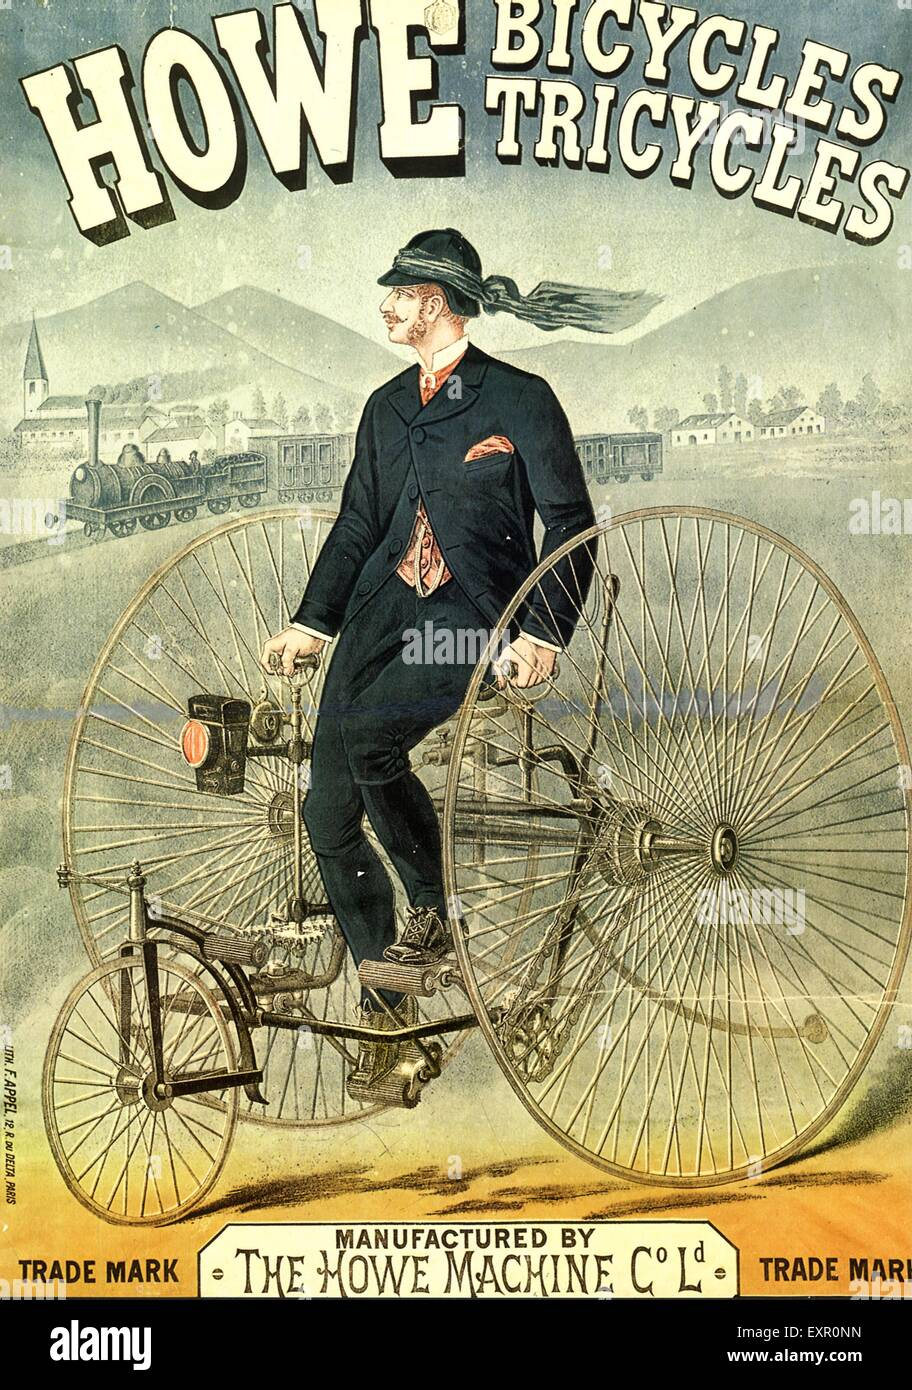 1860s UK Howe Bicycles Poster - Stock Image